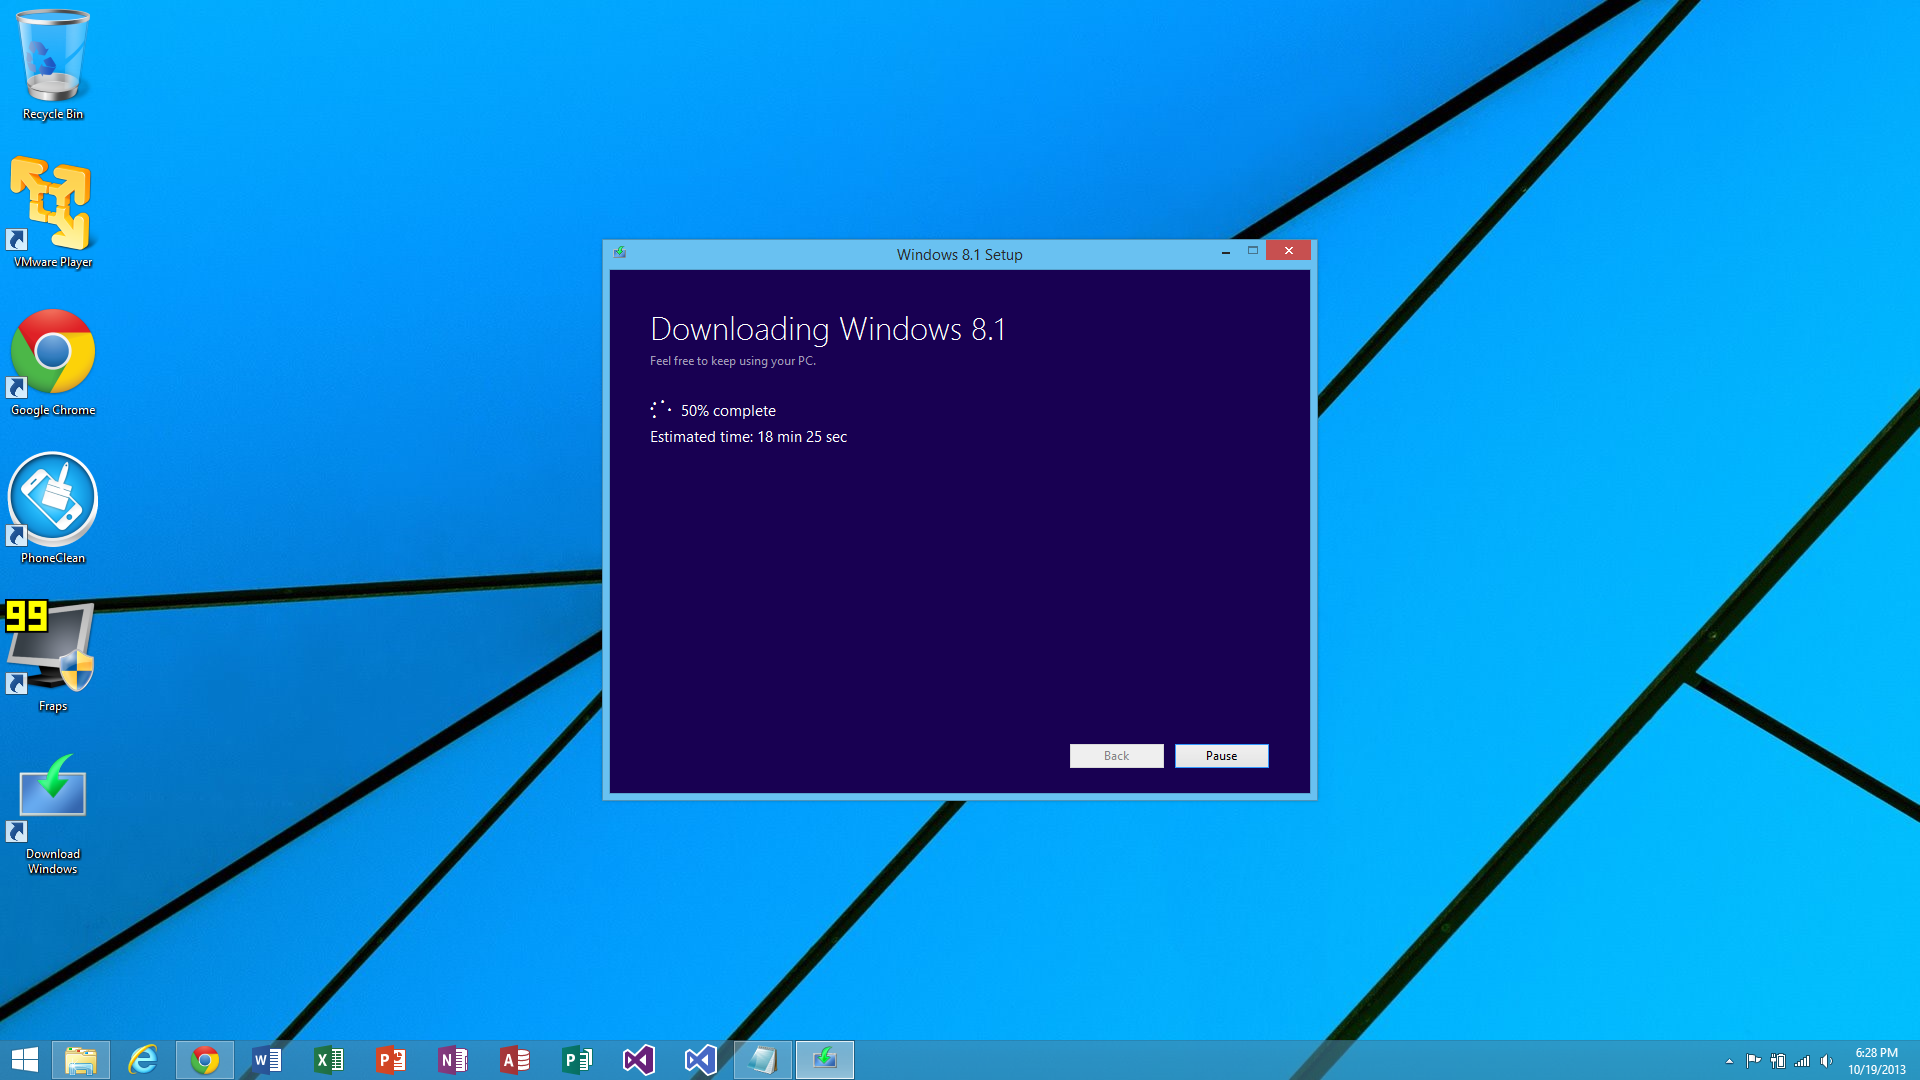 Preview download windows 8.1